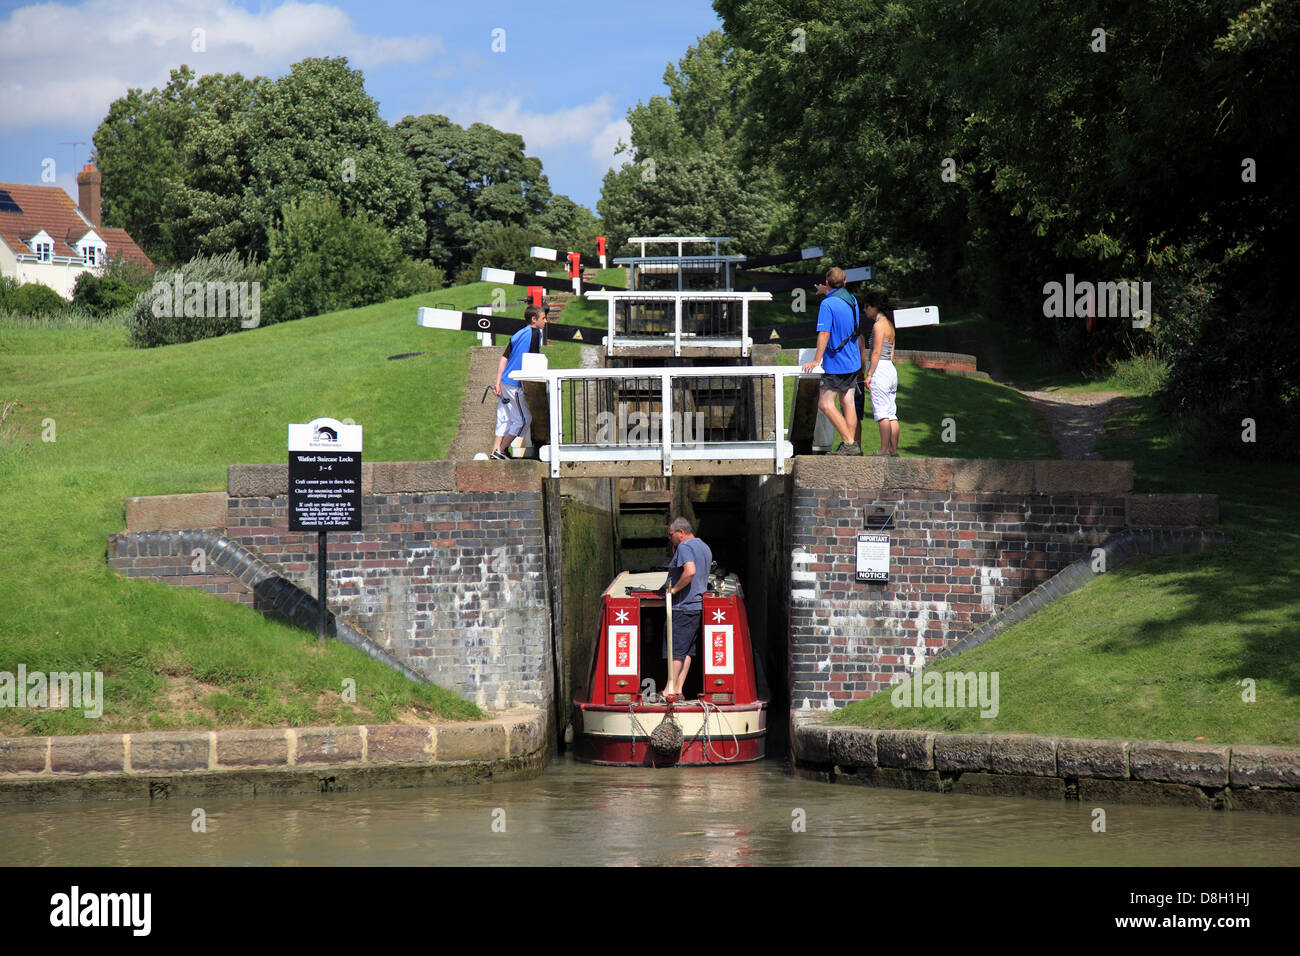 A narrowboat entering Lock 3, the bottom lock of the flight of Watford Locks on the Grand Union Canal - Stock Image